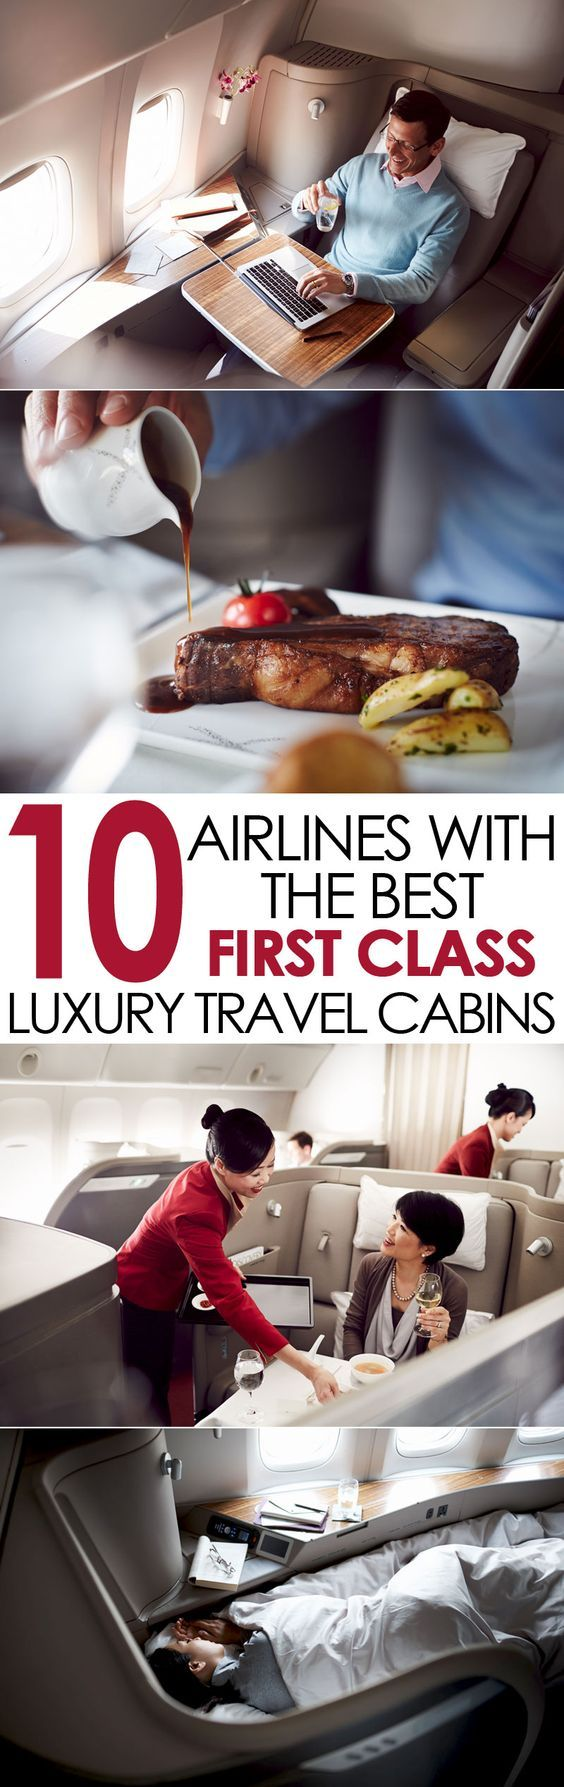 10 airlines with the best first class luxury travel cabins. Traveling can be ... #FirstClassTravel #travel #FirstClass #TravelLuxury #FirstClassFlights #FirstClassSeats #FirstClassTickets #airlines